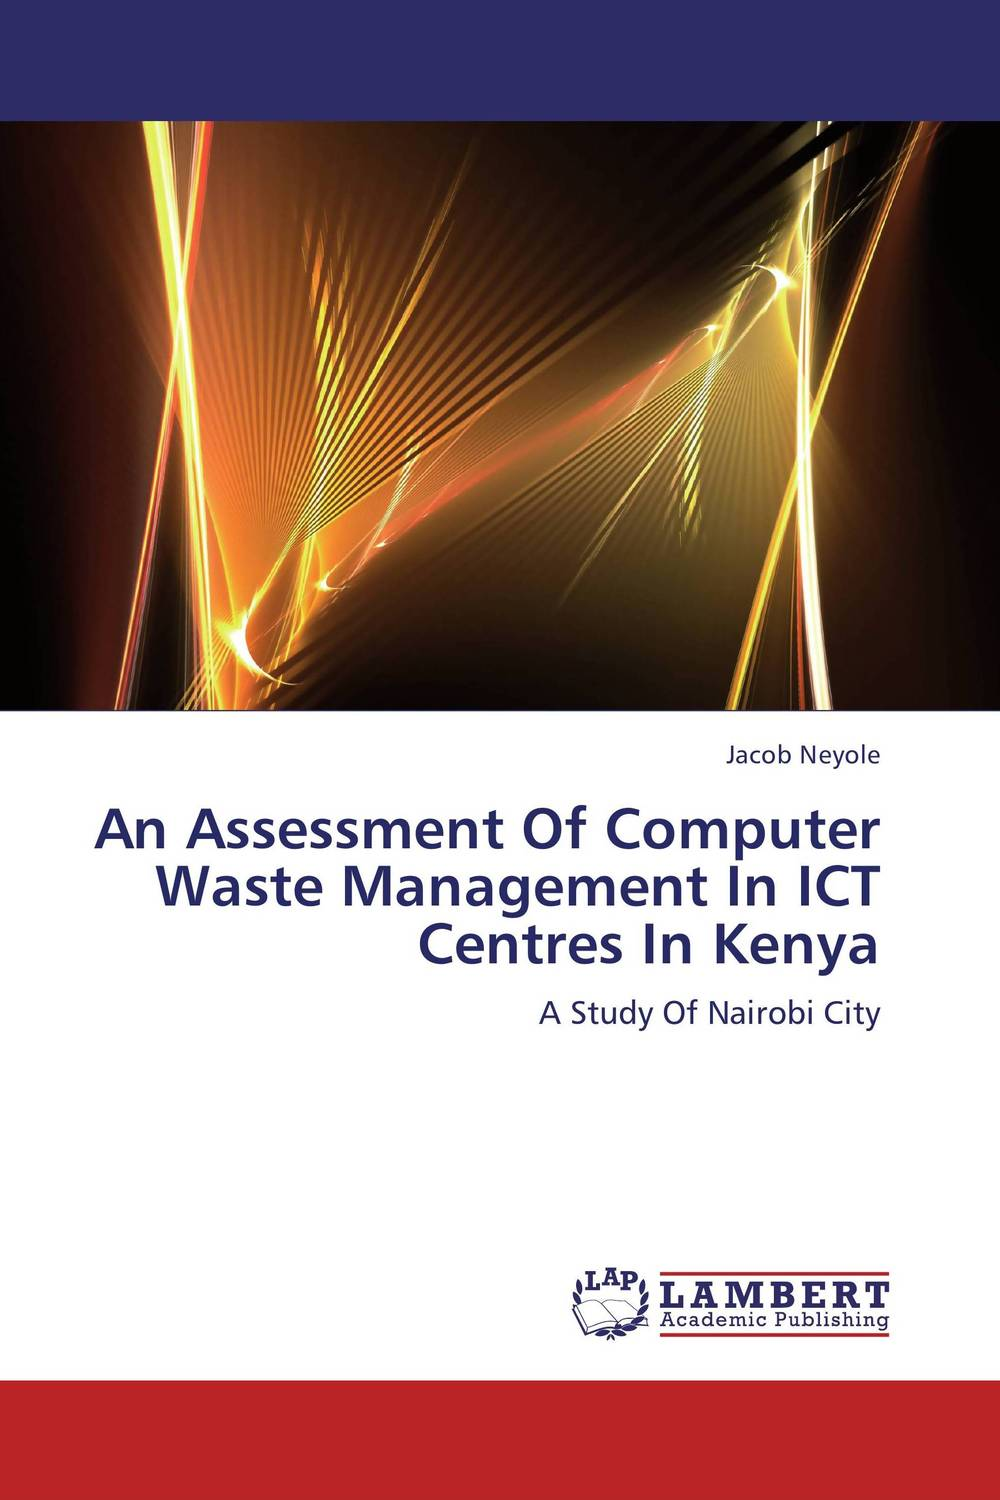 An Assessment Of Computer Waste Management In ICT Centres In Kenya 1000pcs long range rfid plastic seal tag alien h3 used for waste bin management and gas jar management